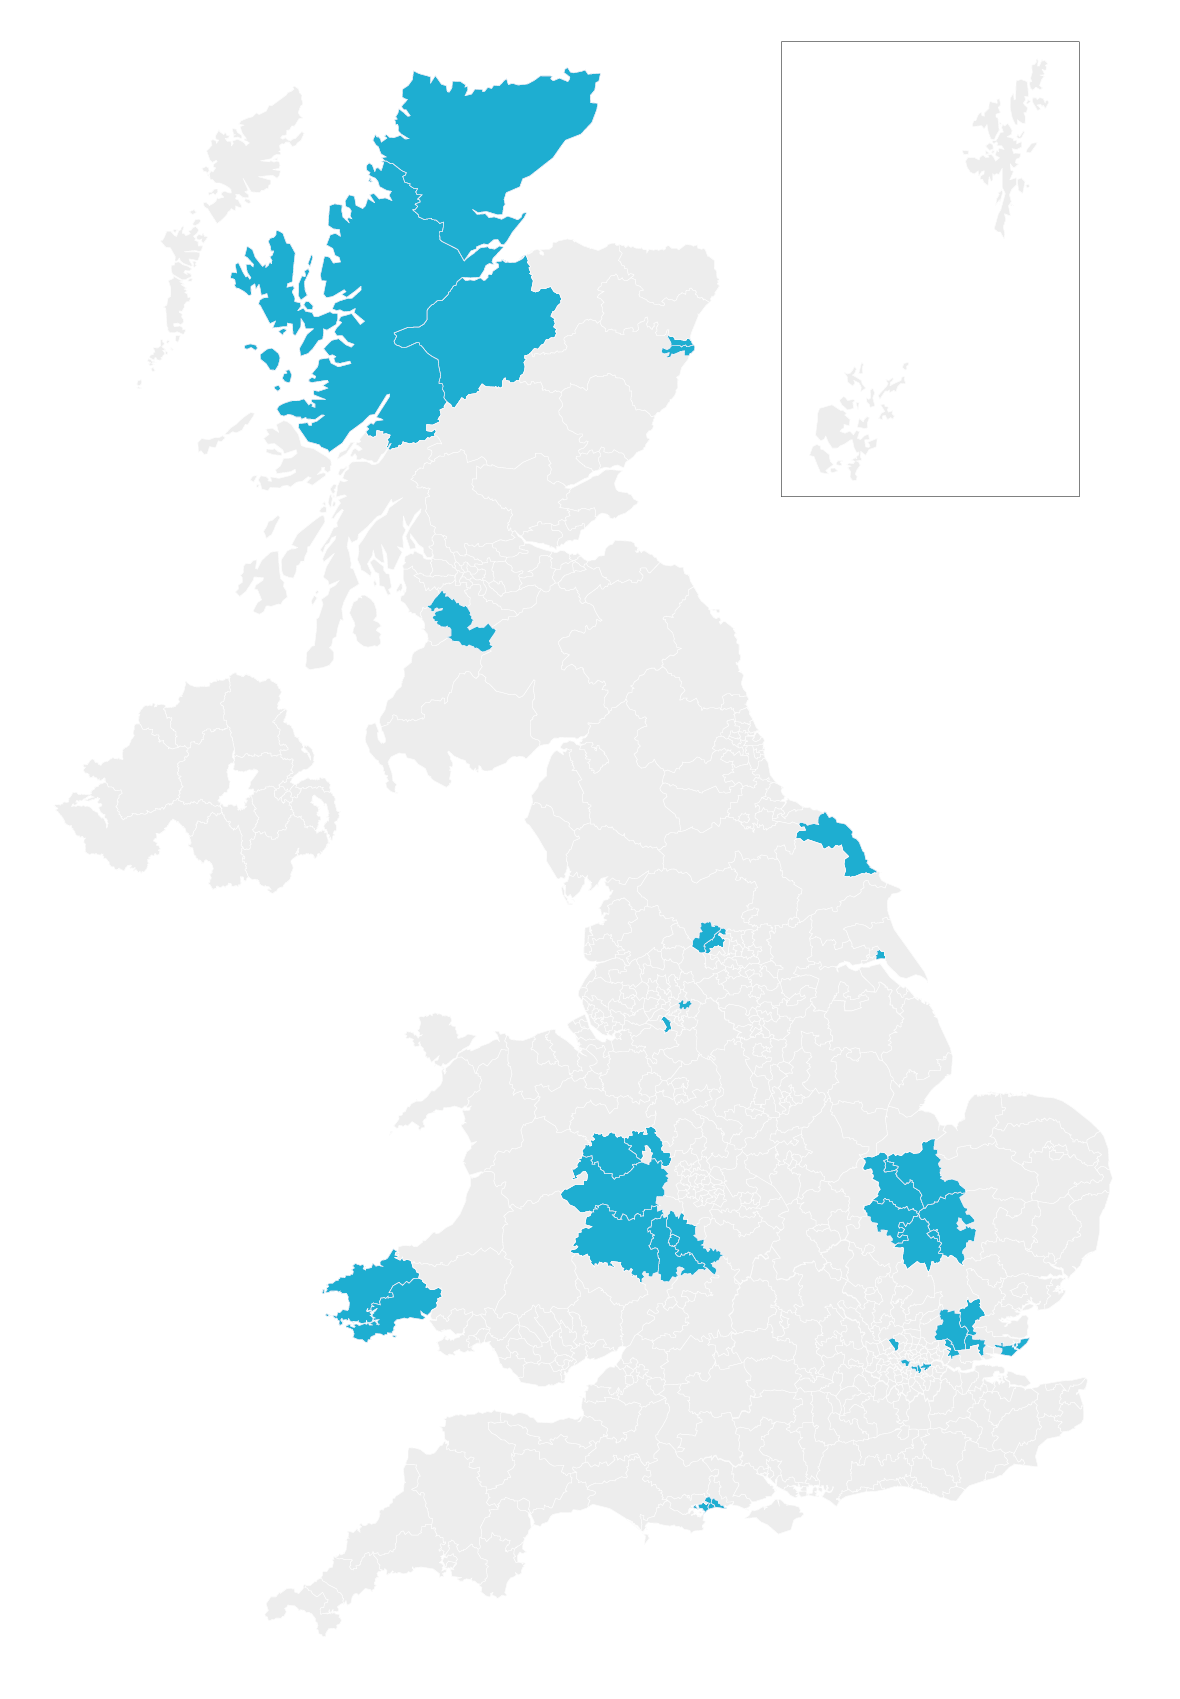 Map of the UK highlighting participating local authorities in the 2021 community